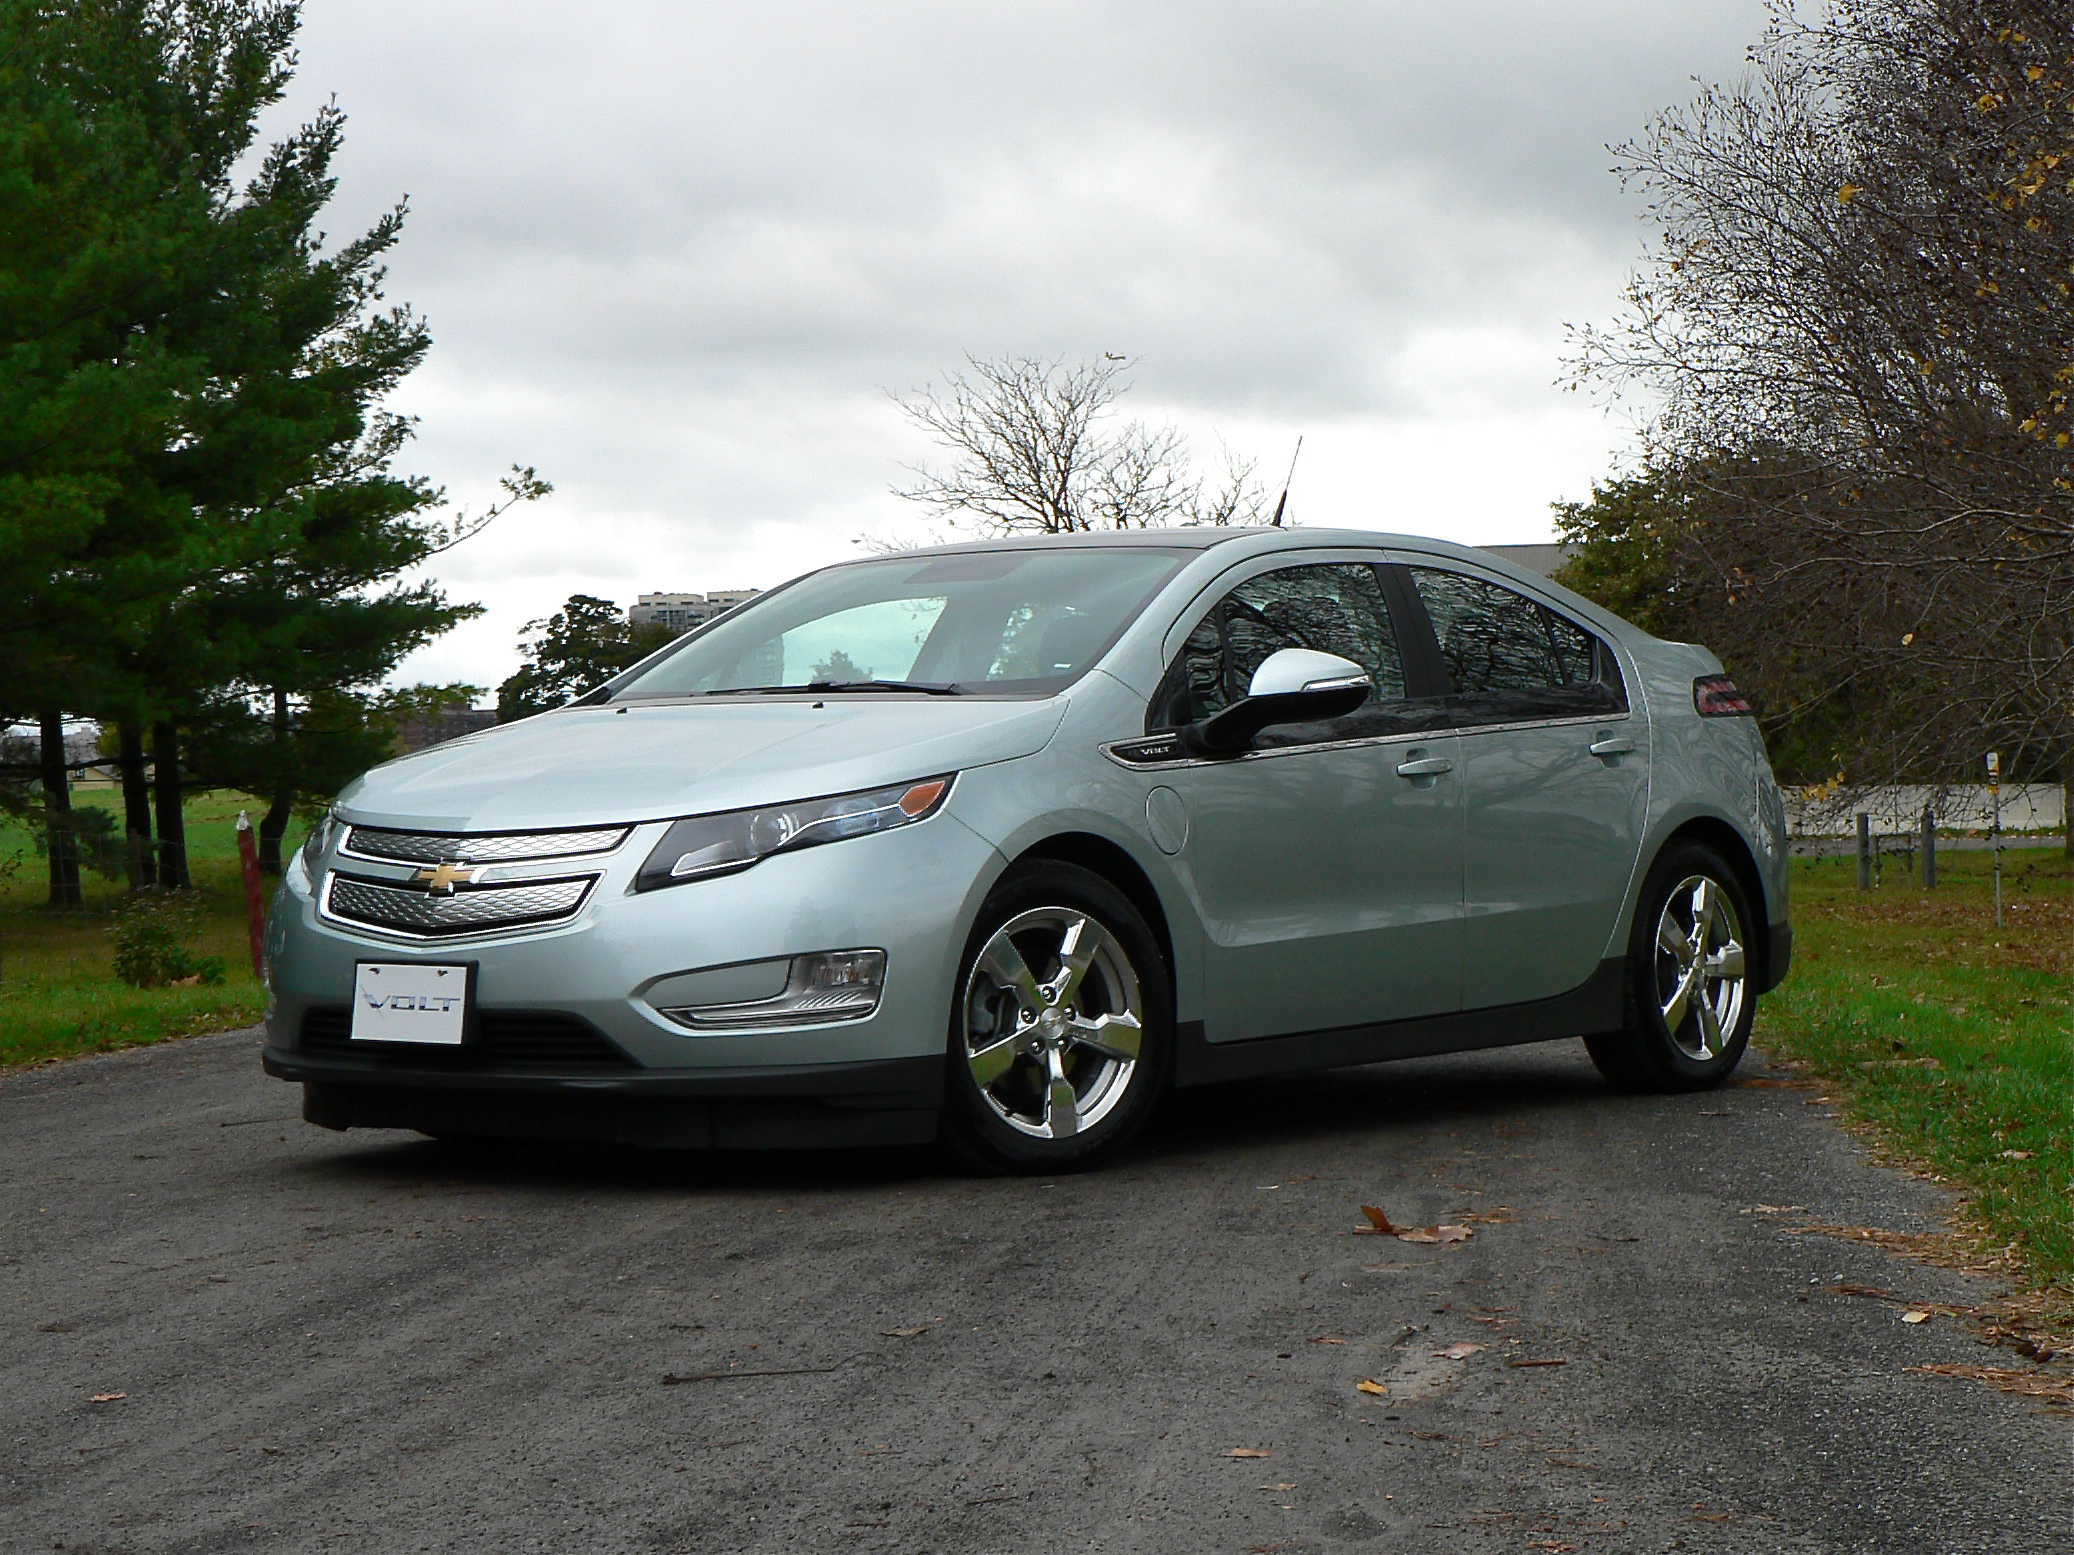 comparo 2012 chevrolet volt vs cruze eco john leblanc 39 s straight six. Black Bedroom Furniture Sets. Home Design Ideas